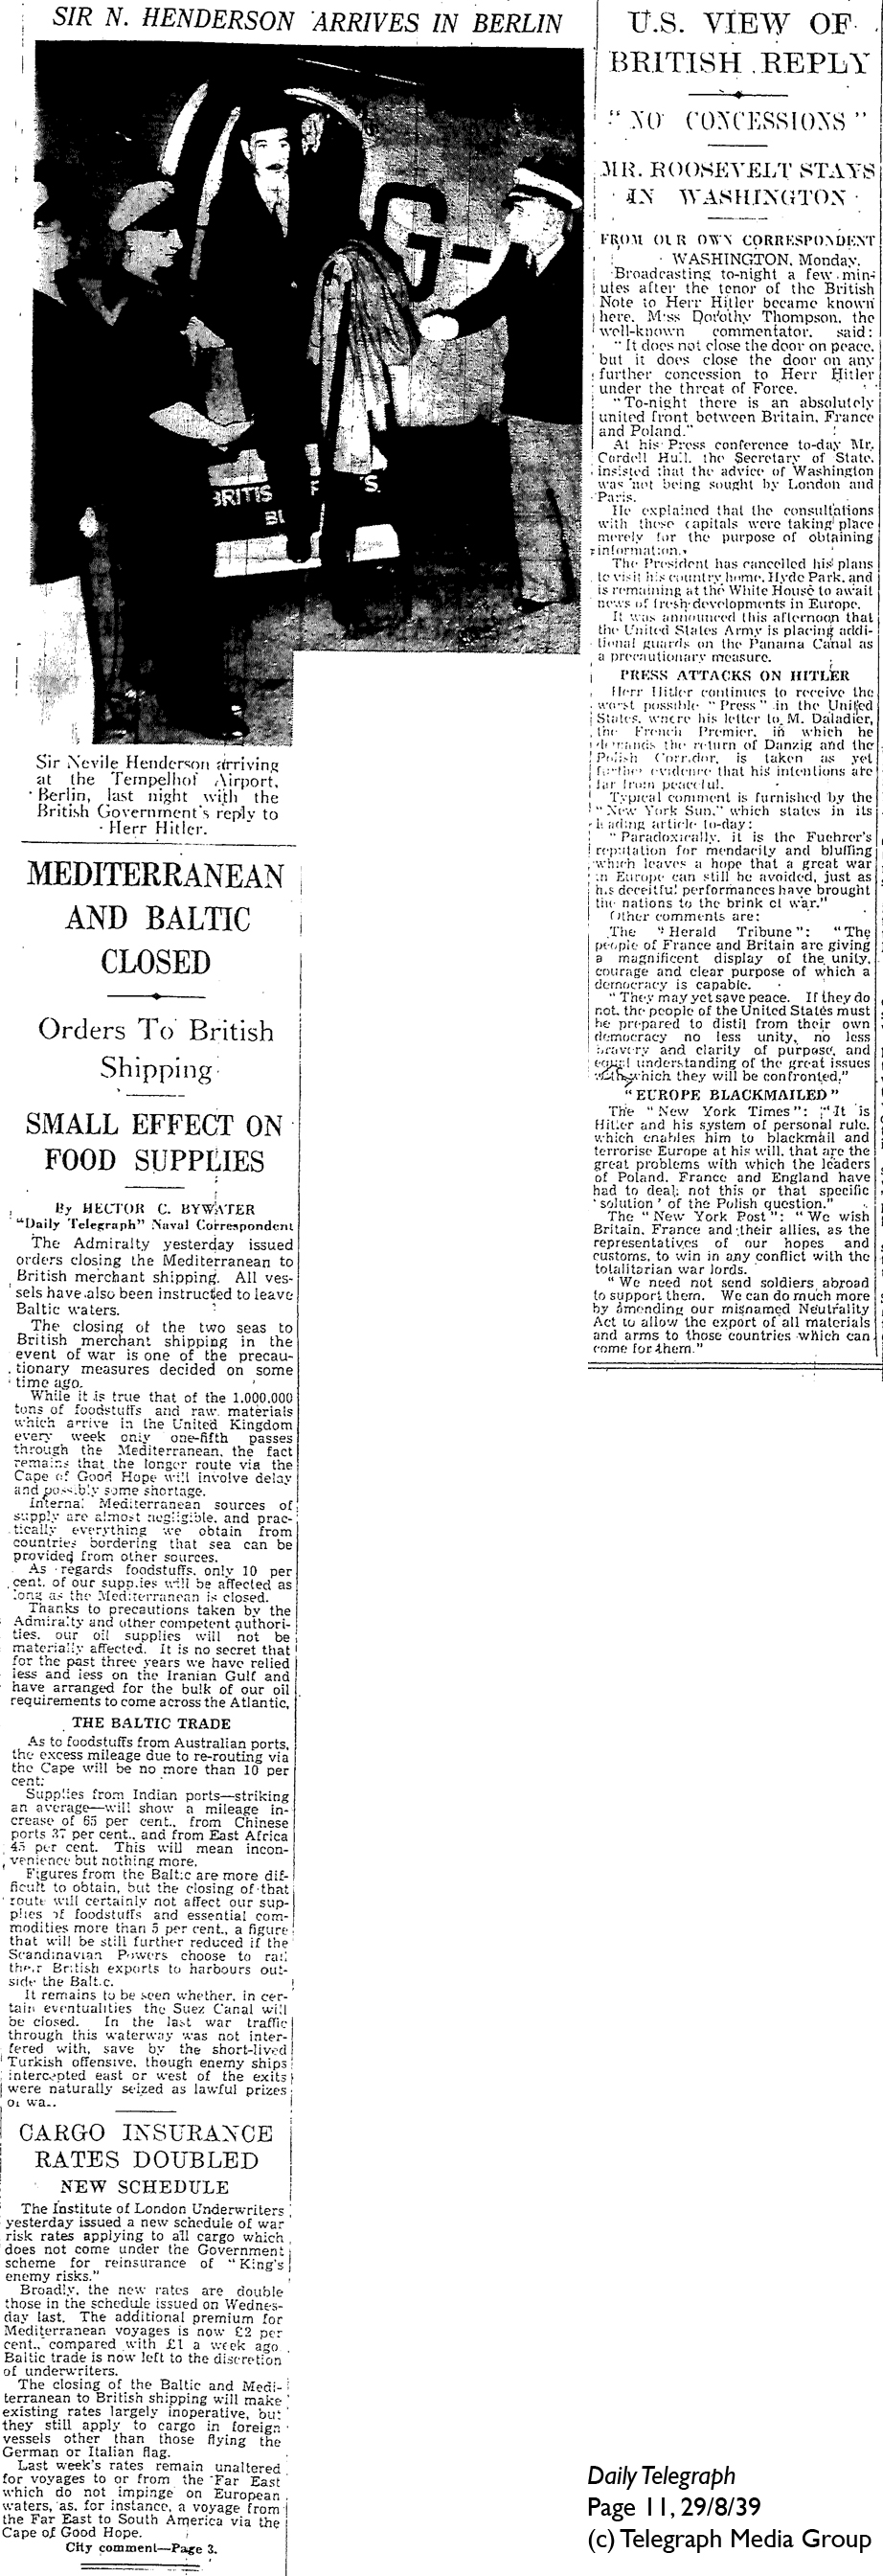 Daily Telegraph 29-8-39 Page 11